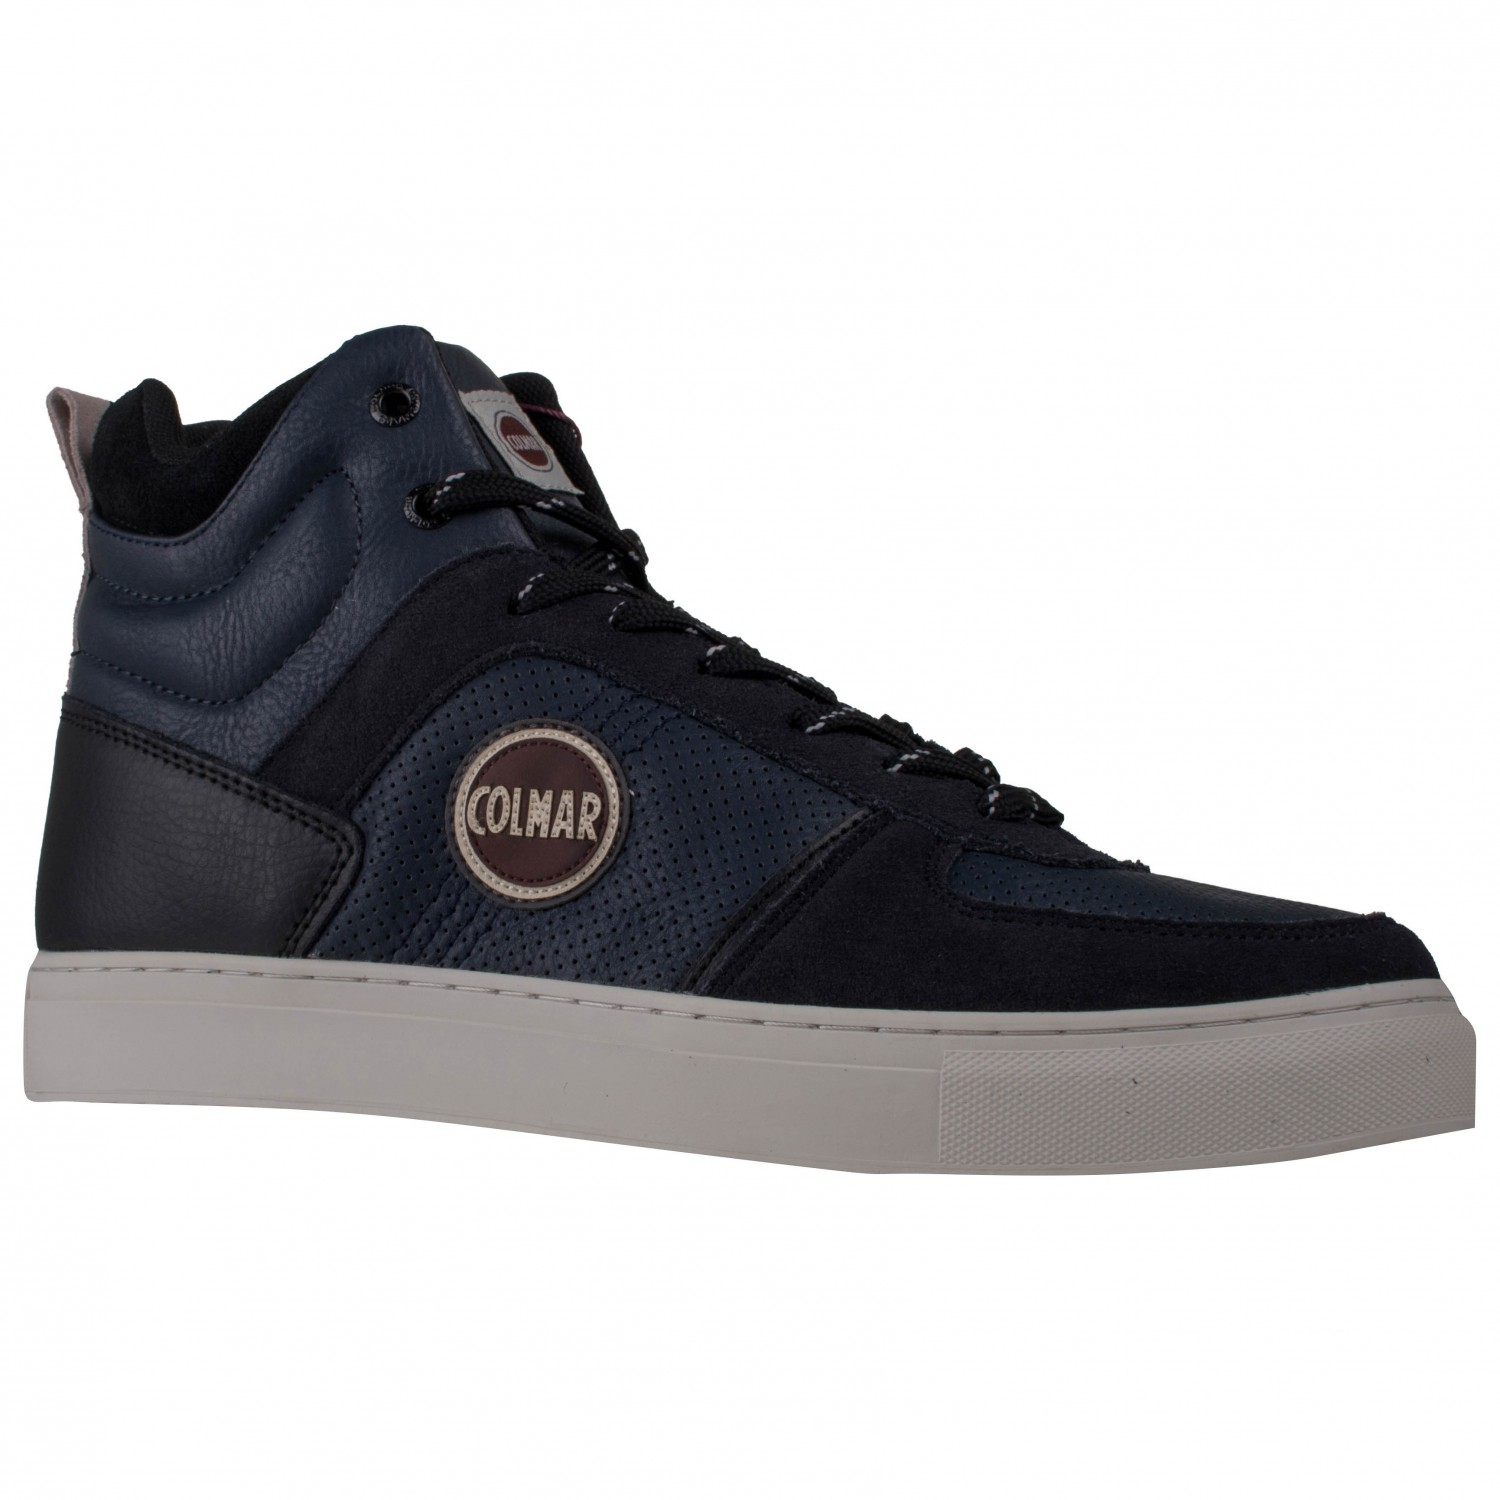 Colmar Originals - Renton Drill - Sneaker Navy